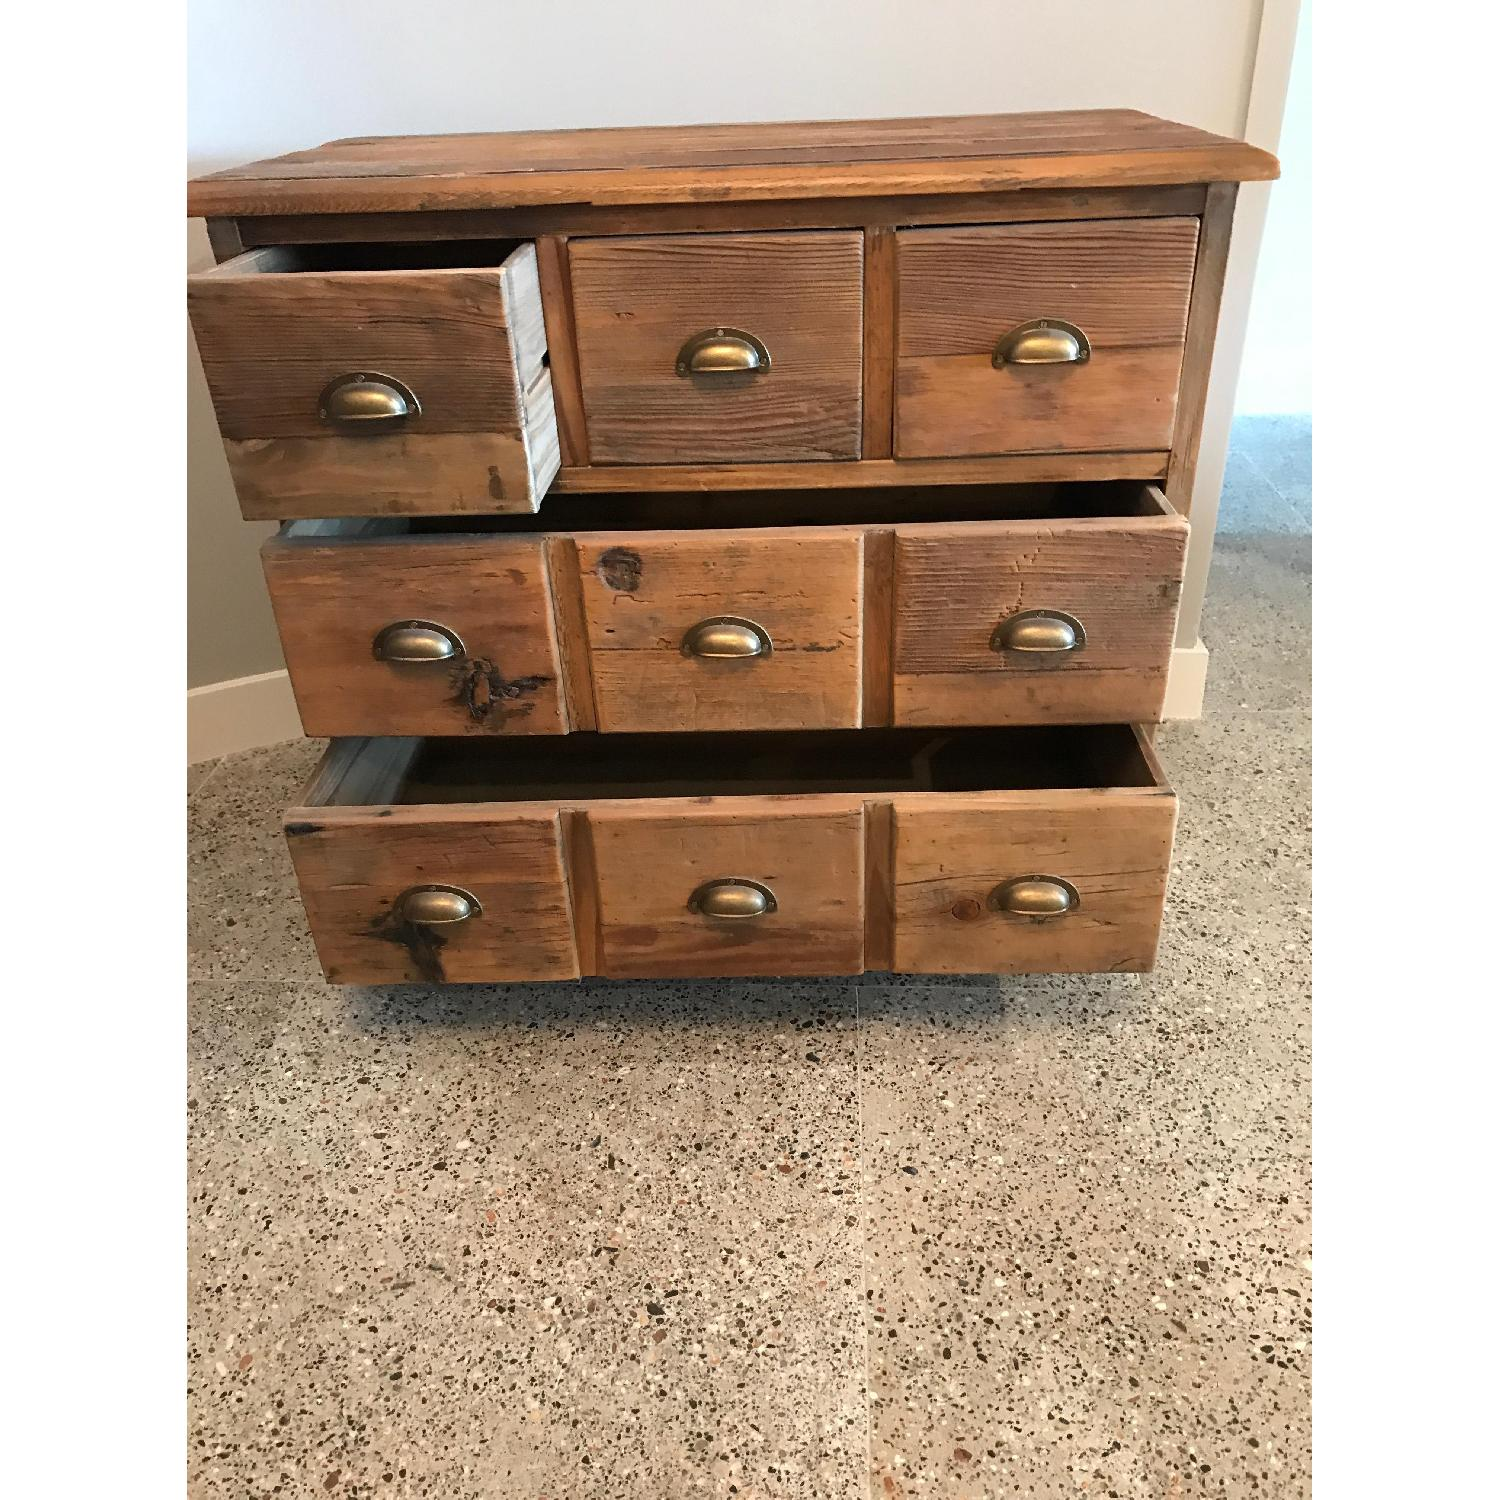 Crate & Barrel Bedford Apothecary Chest - image-2